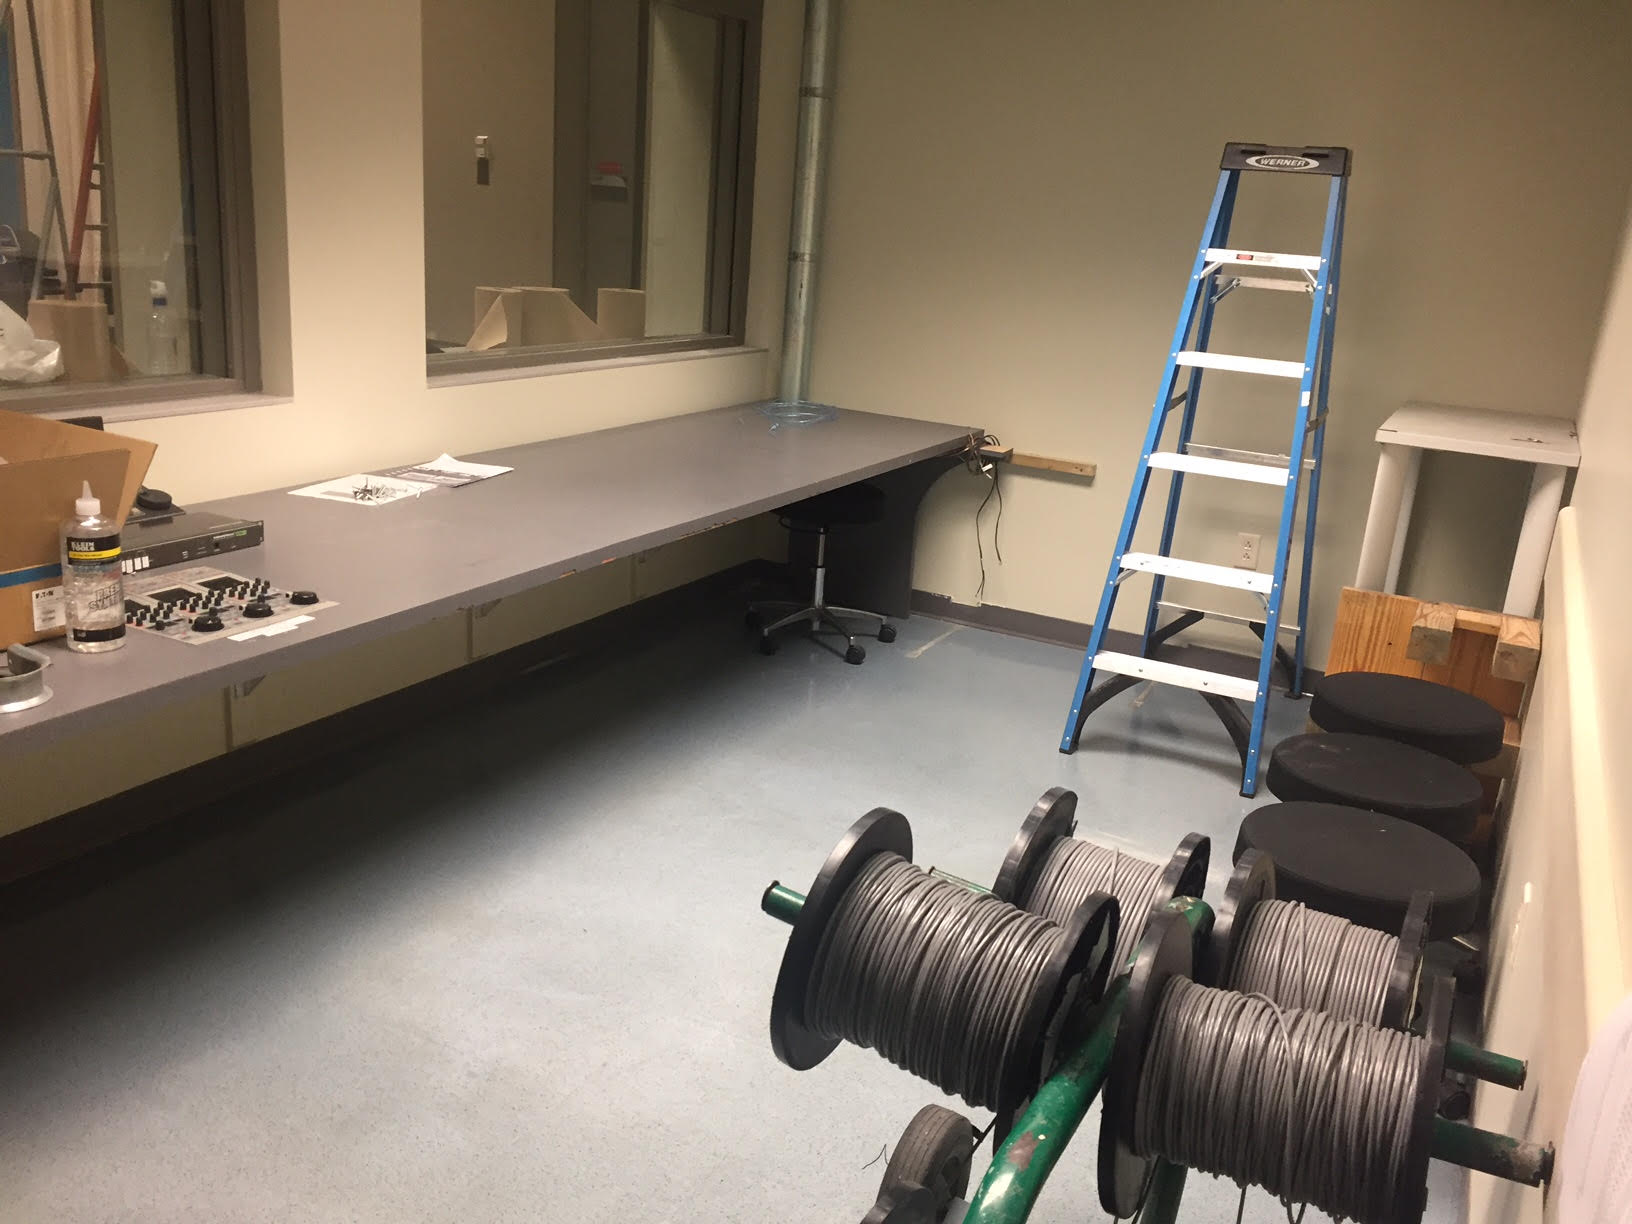 Additional cables were installed in different parts of the studio